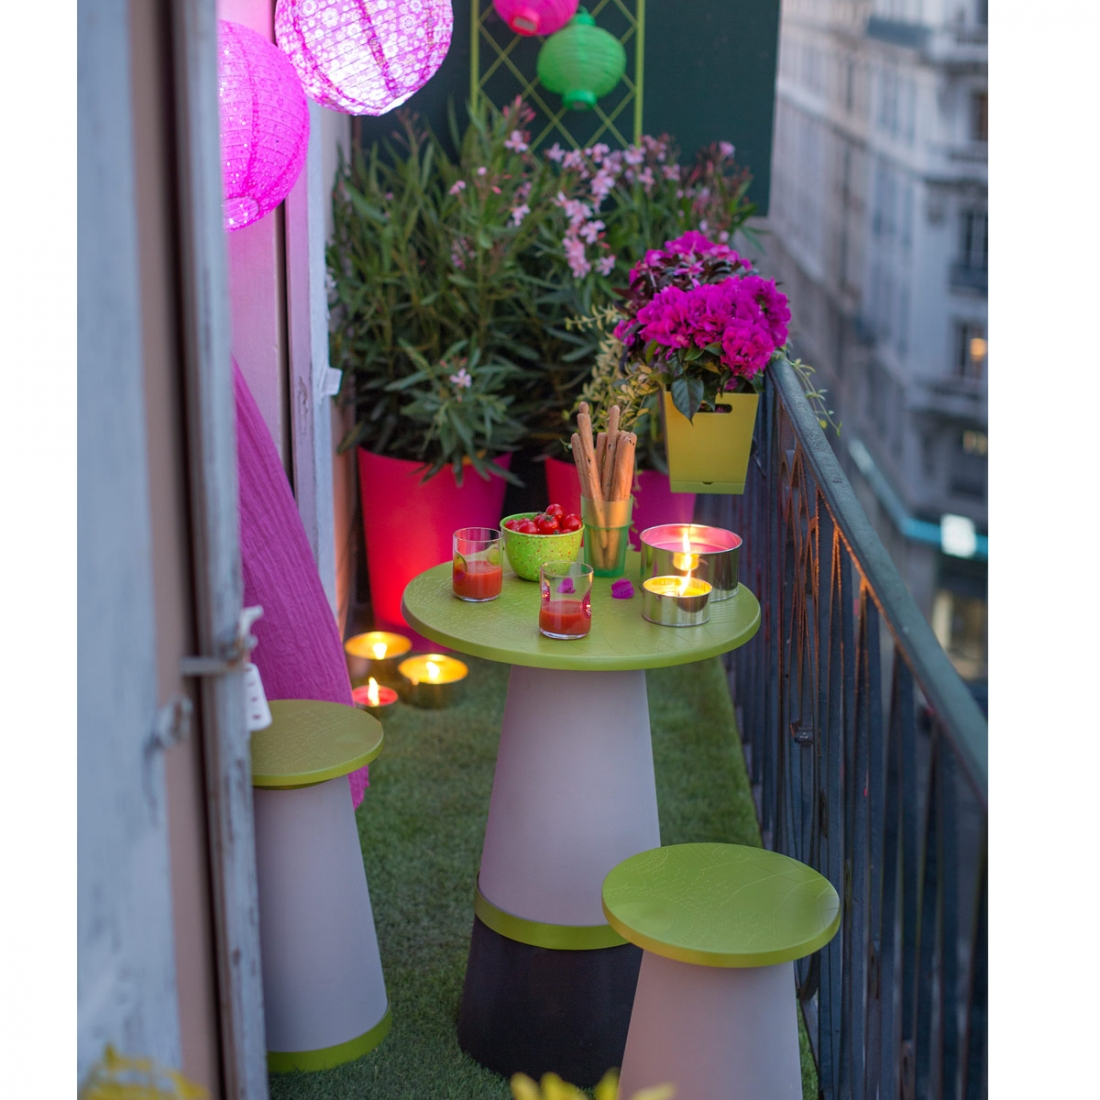 Zendart author at deco maison design - Petit salon pour balcon ...